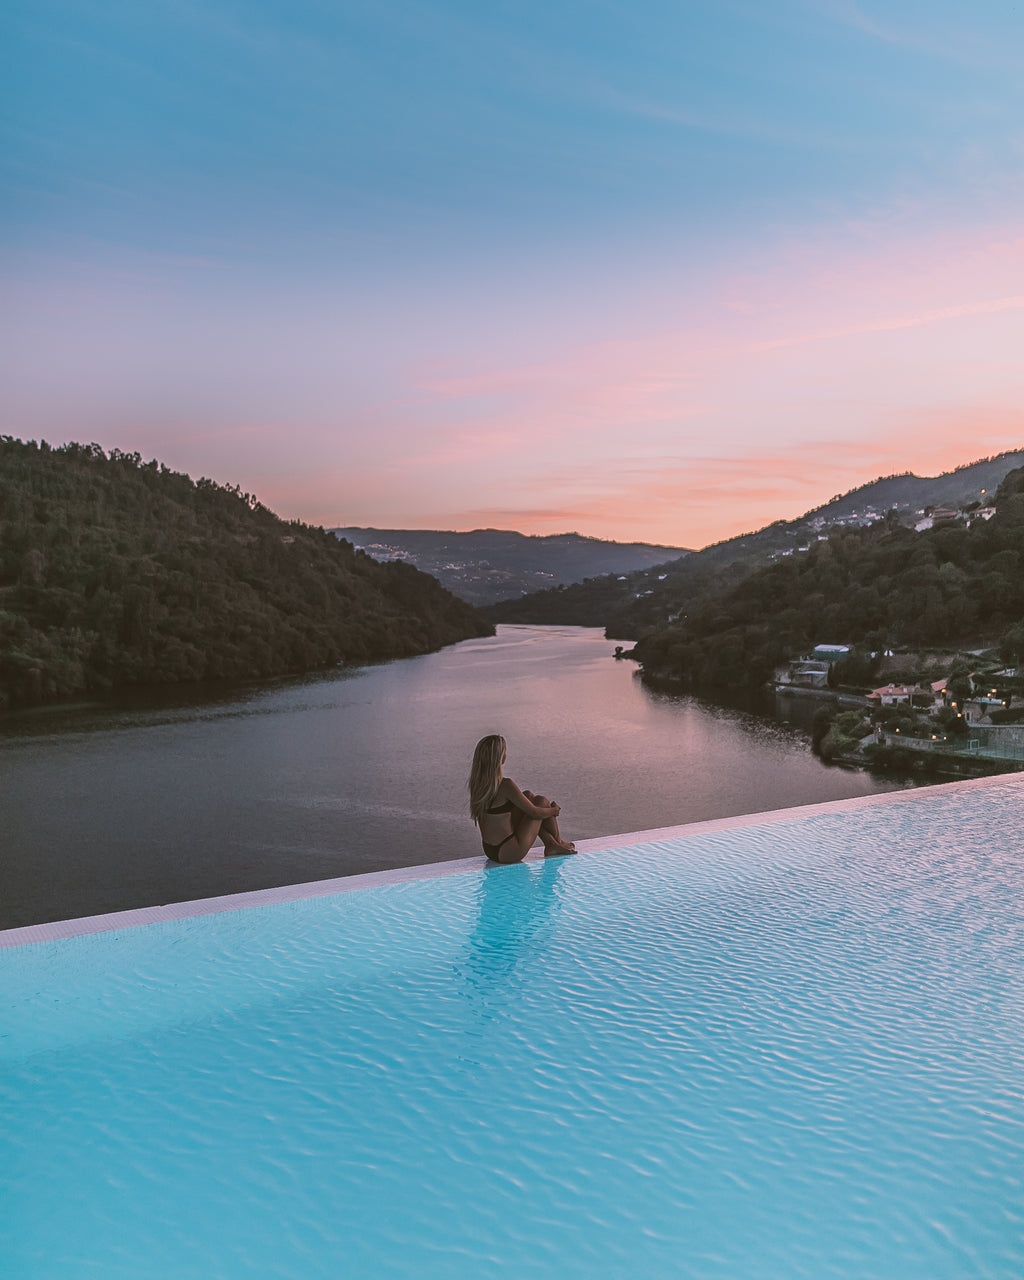 BTS #7 - Sunset in Douro Valley, Portugal